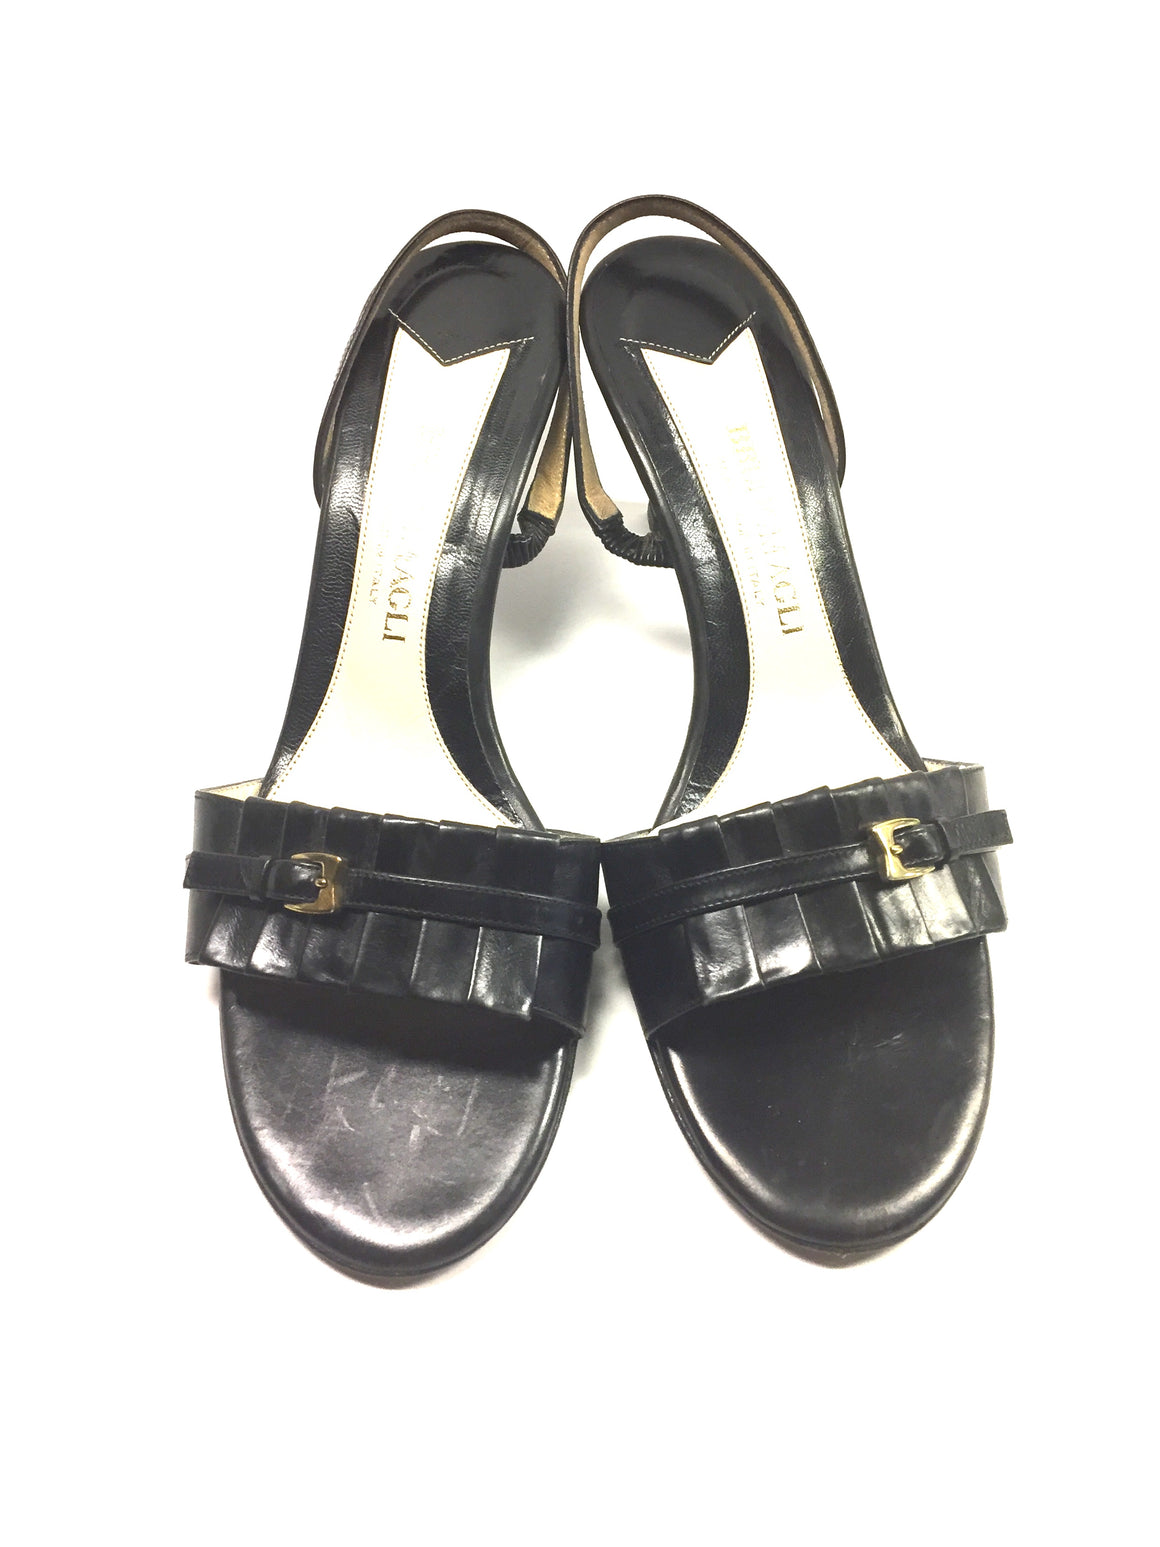 BRUNO MAGLI Black Leather Pleated Uppers Slingback Heel Sandals Sz7.5